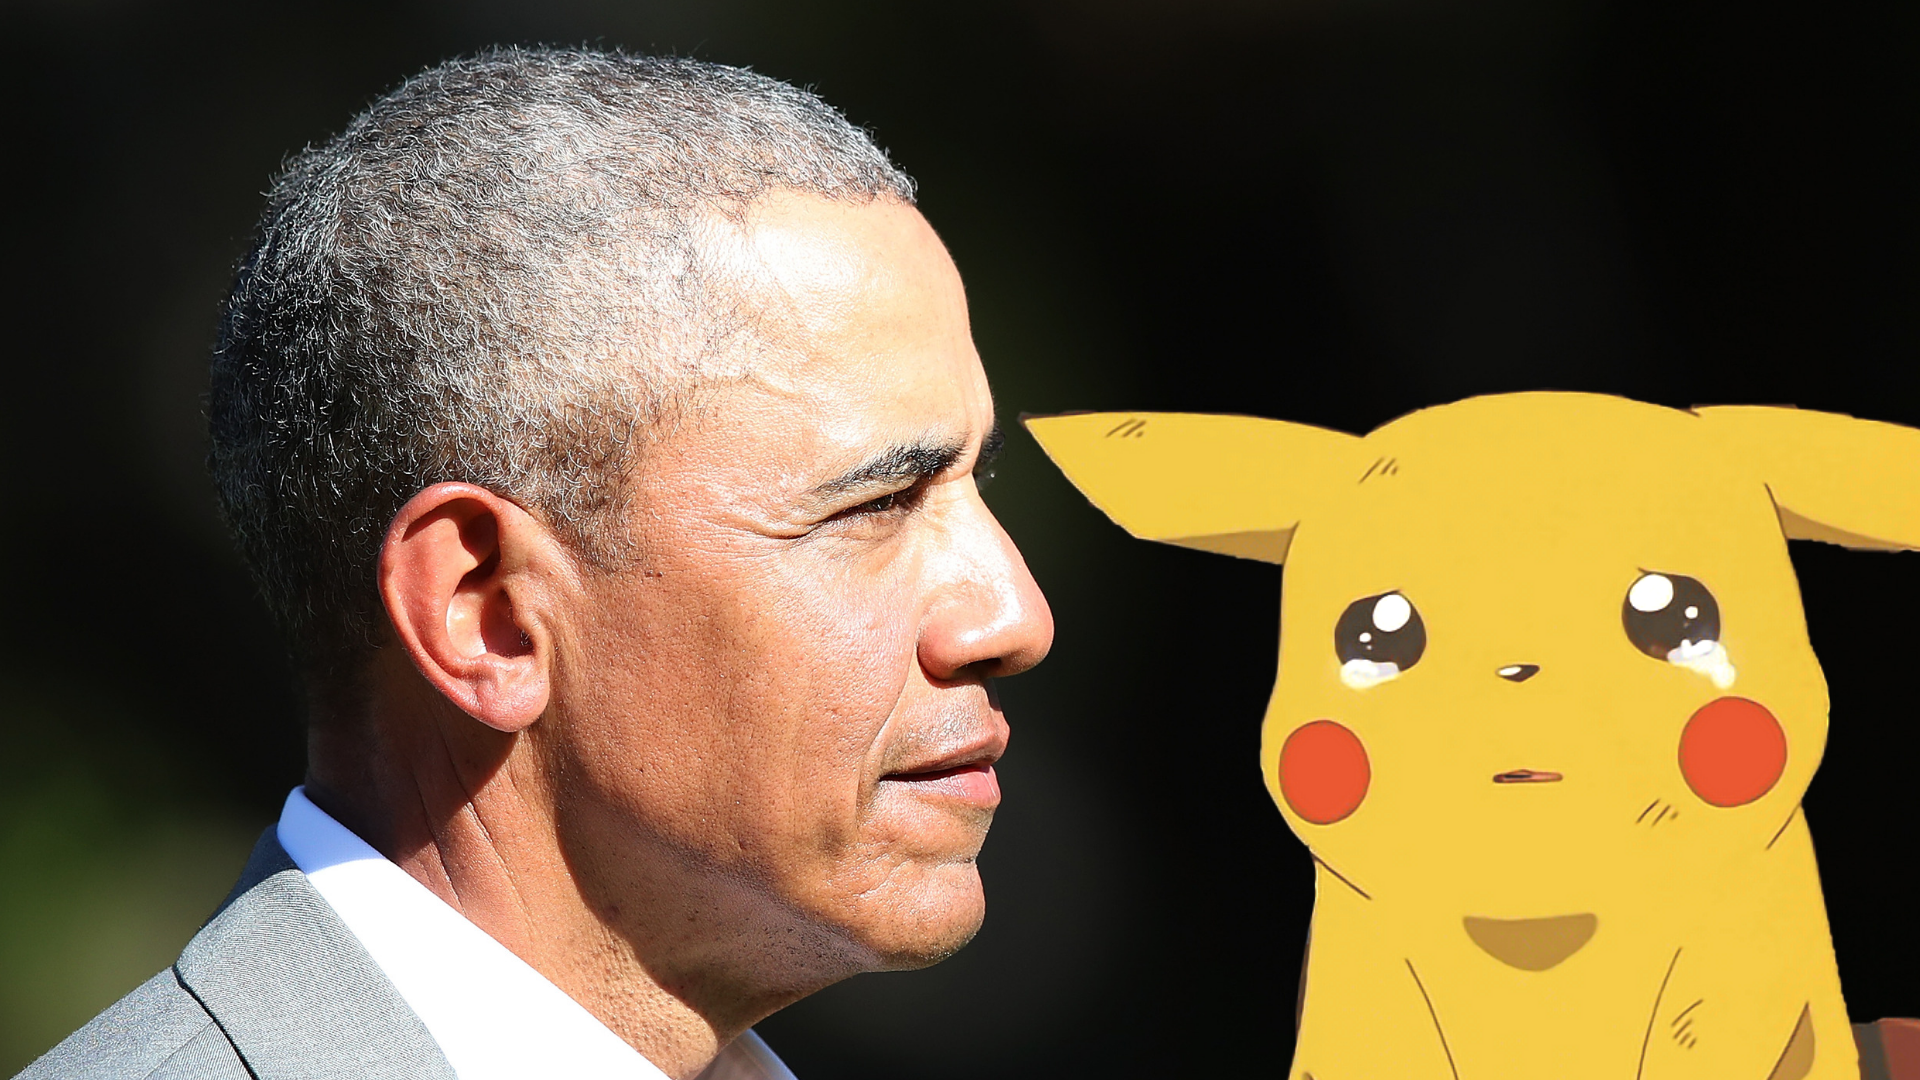 Obama announced that he doesn't care about Pokémon, thus ushering in an age of heartbreak